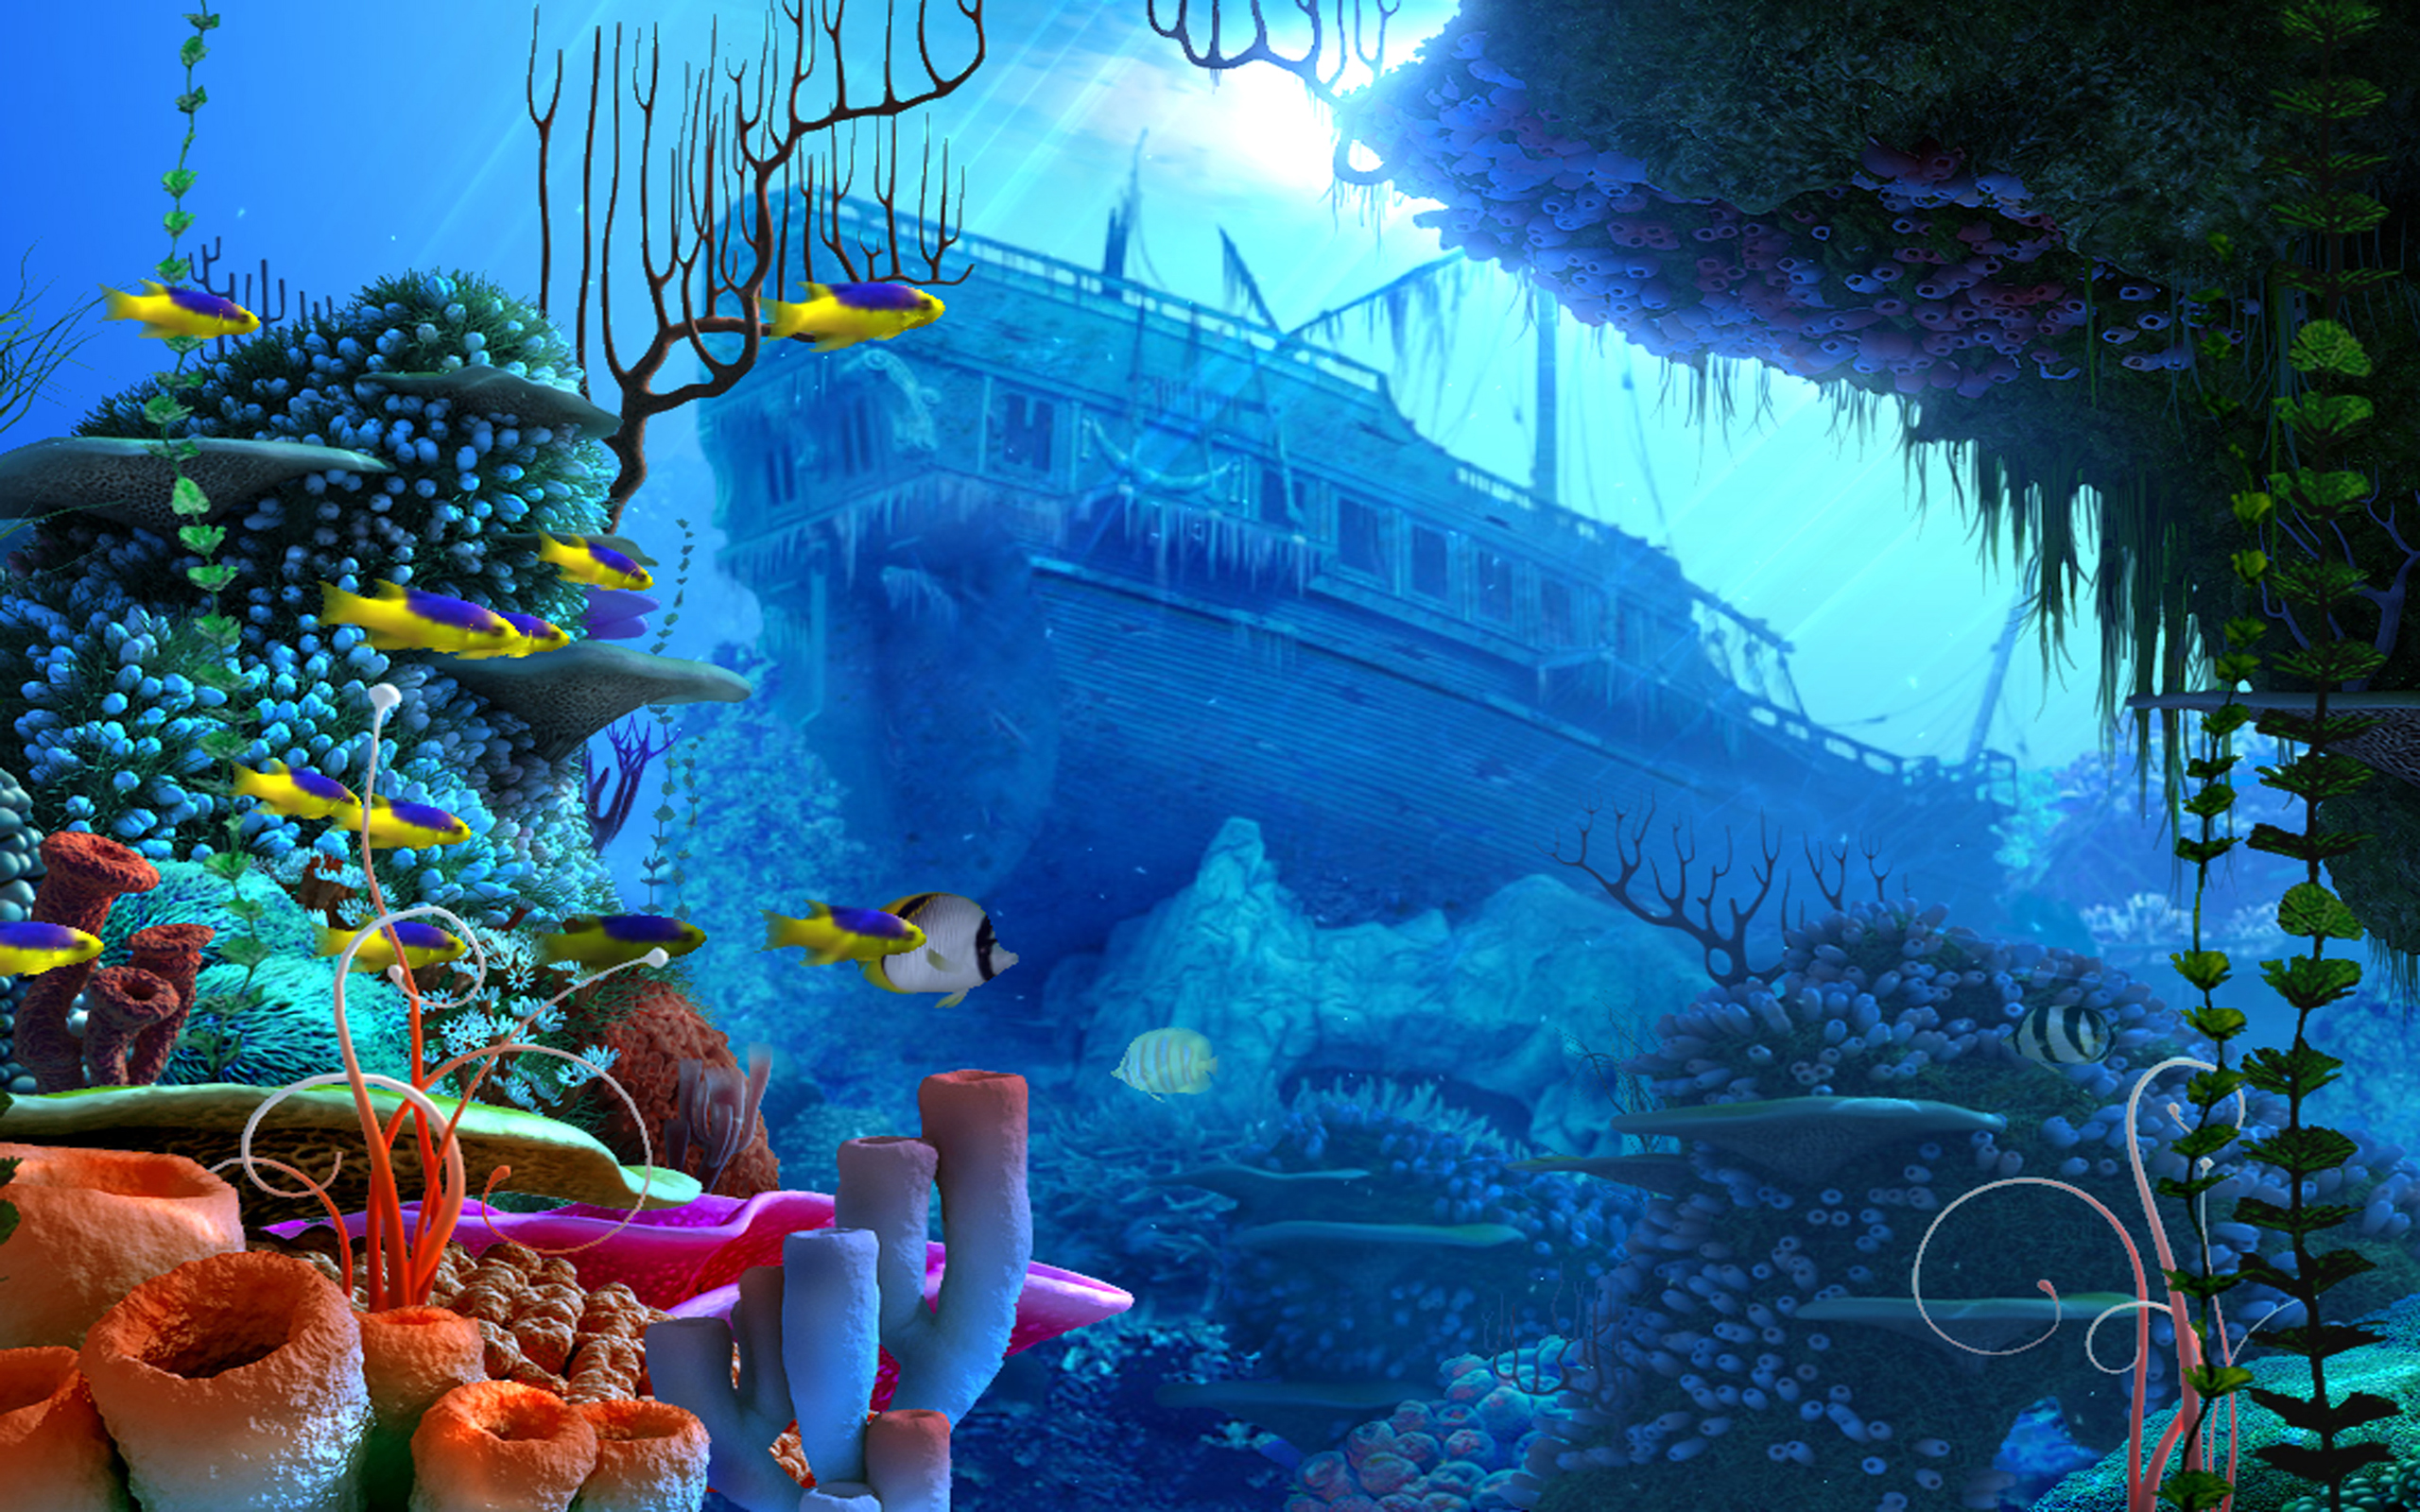 pirates pirate fantasy ship fish ocean underwater wallpaper